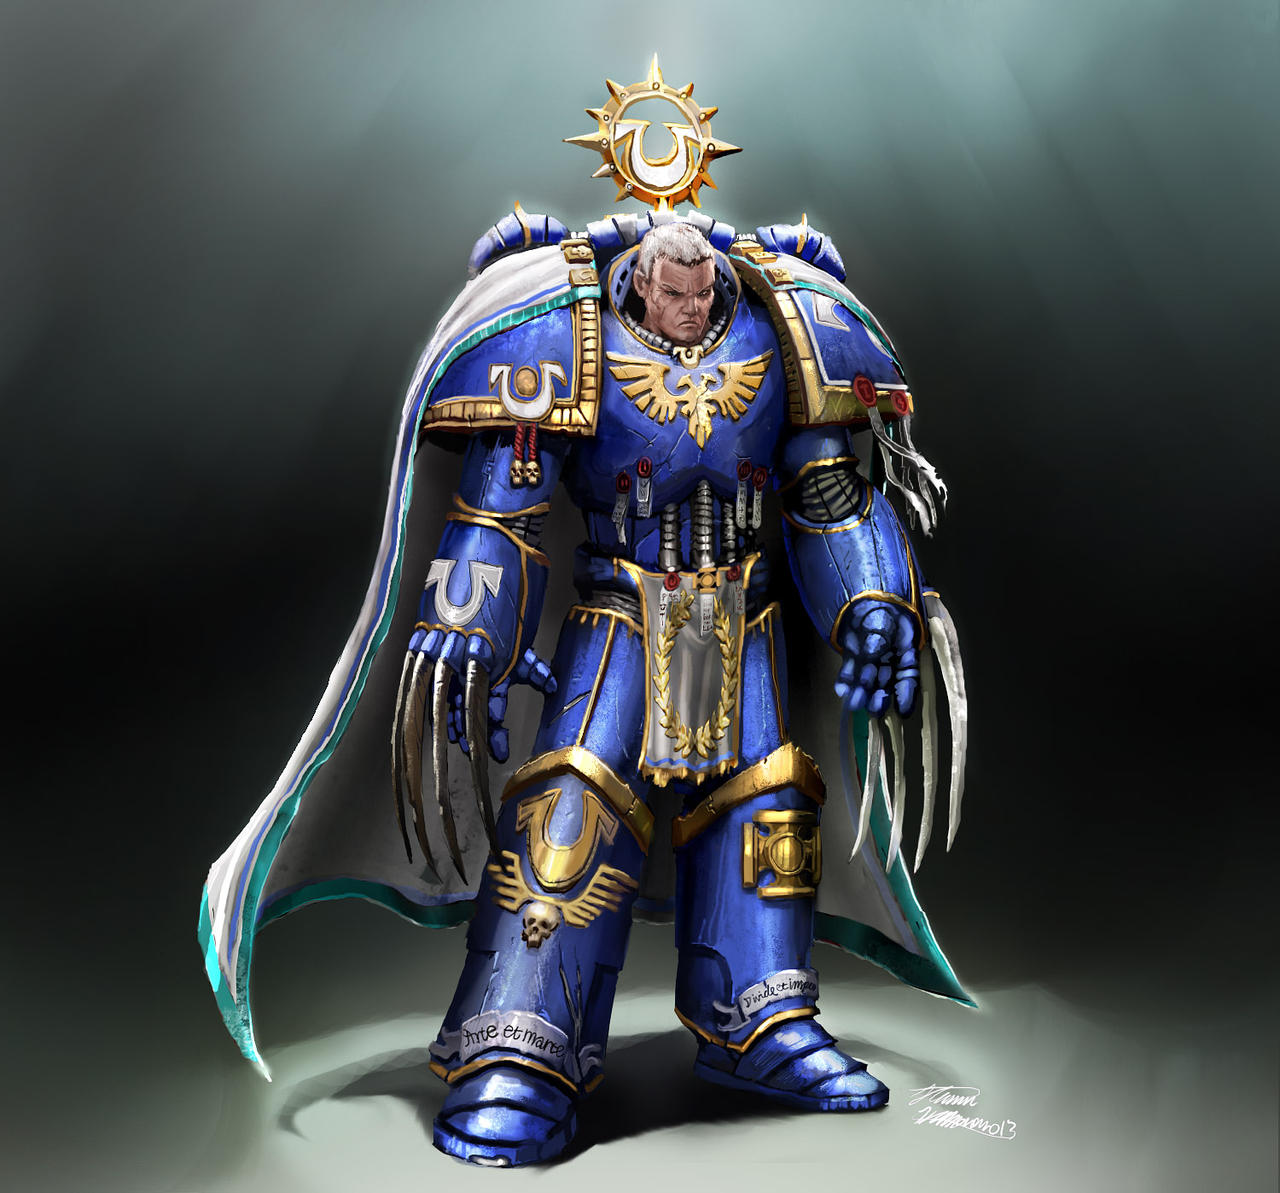 warhammer 40k wallpaper ultramarines - 2018 images & pictures